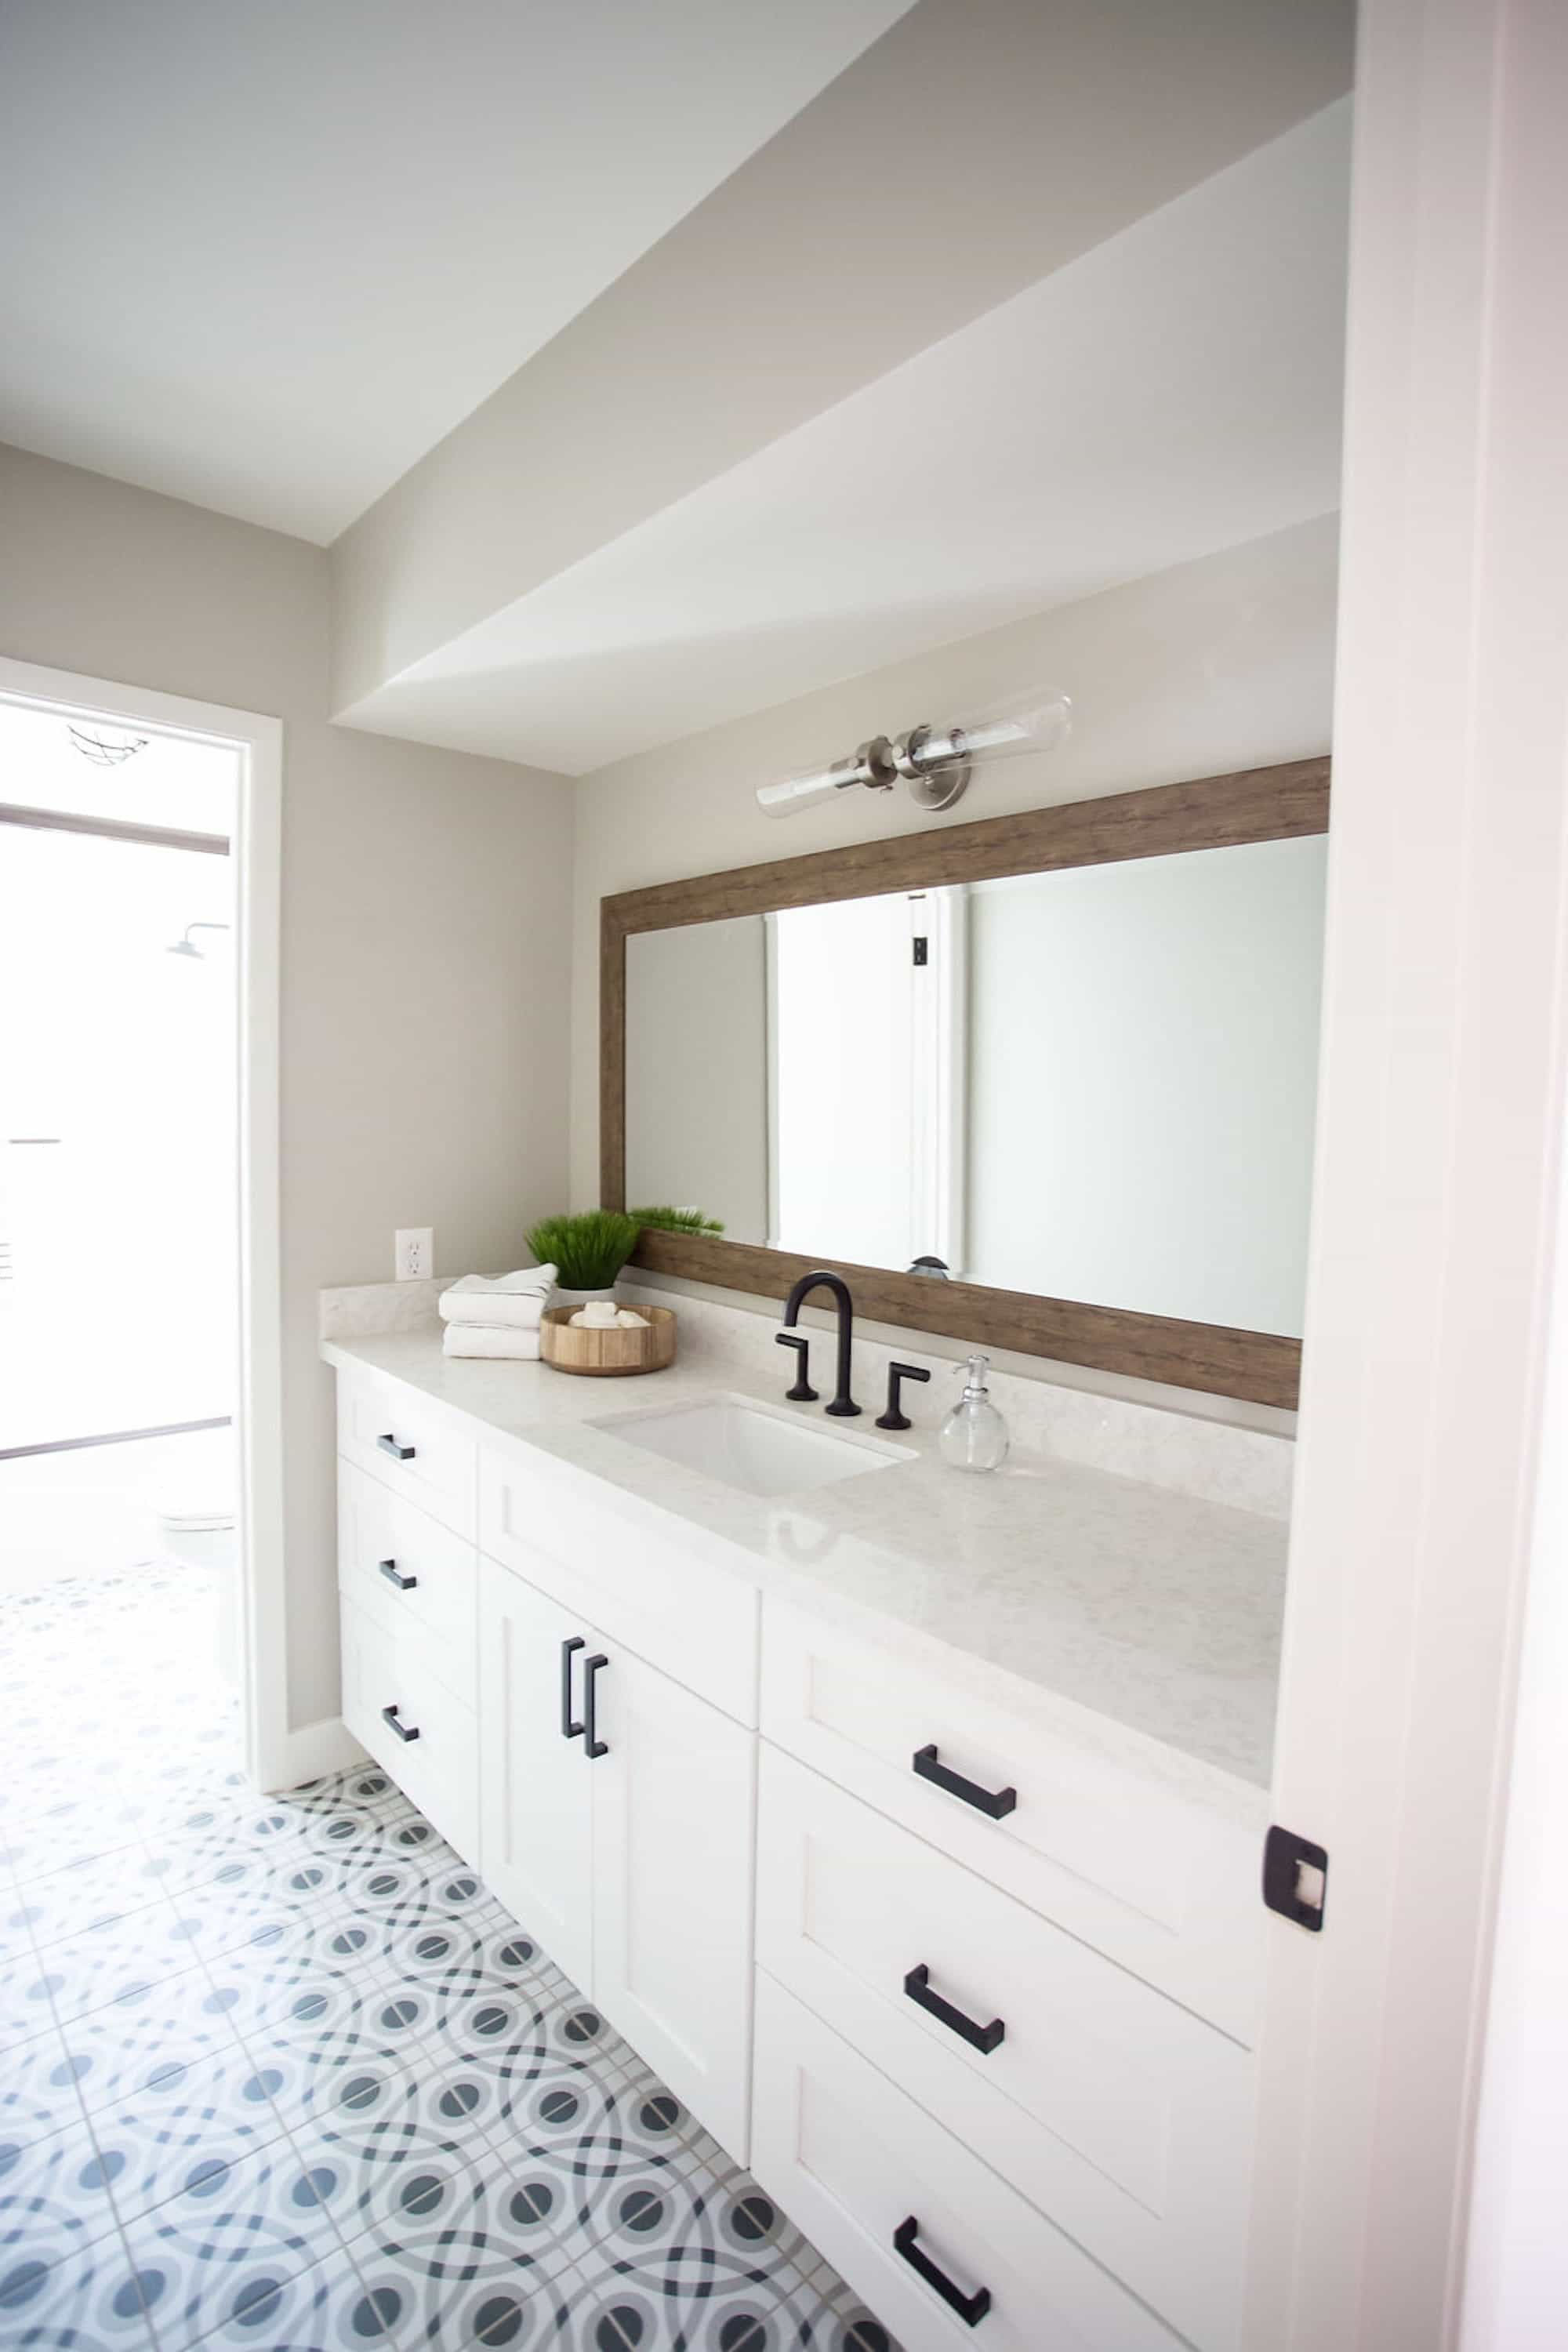 Simple, Stylish Bathroom Featuring Marble Corner Vanity Countertop (Image 21 of 24)